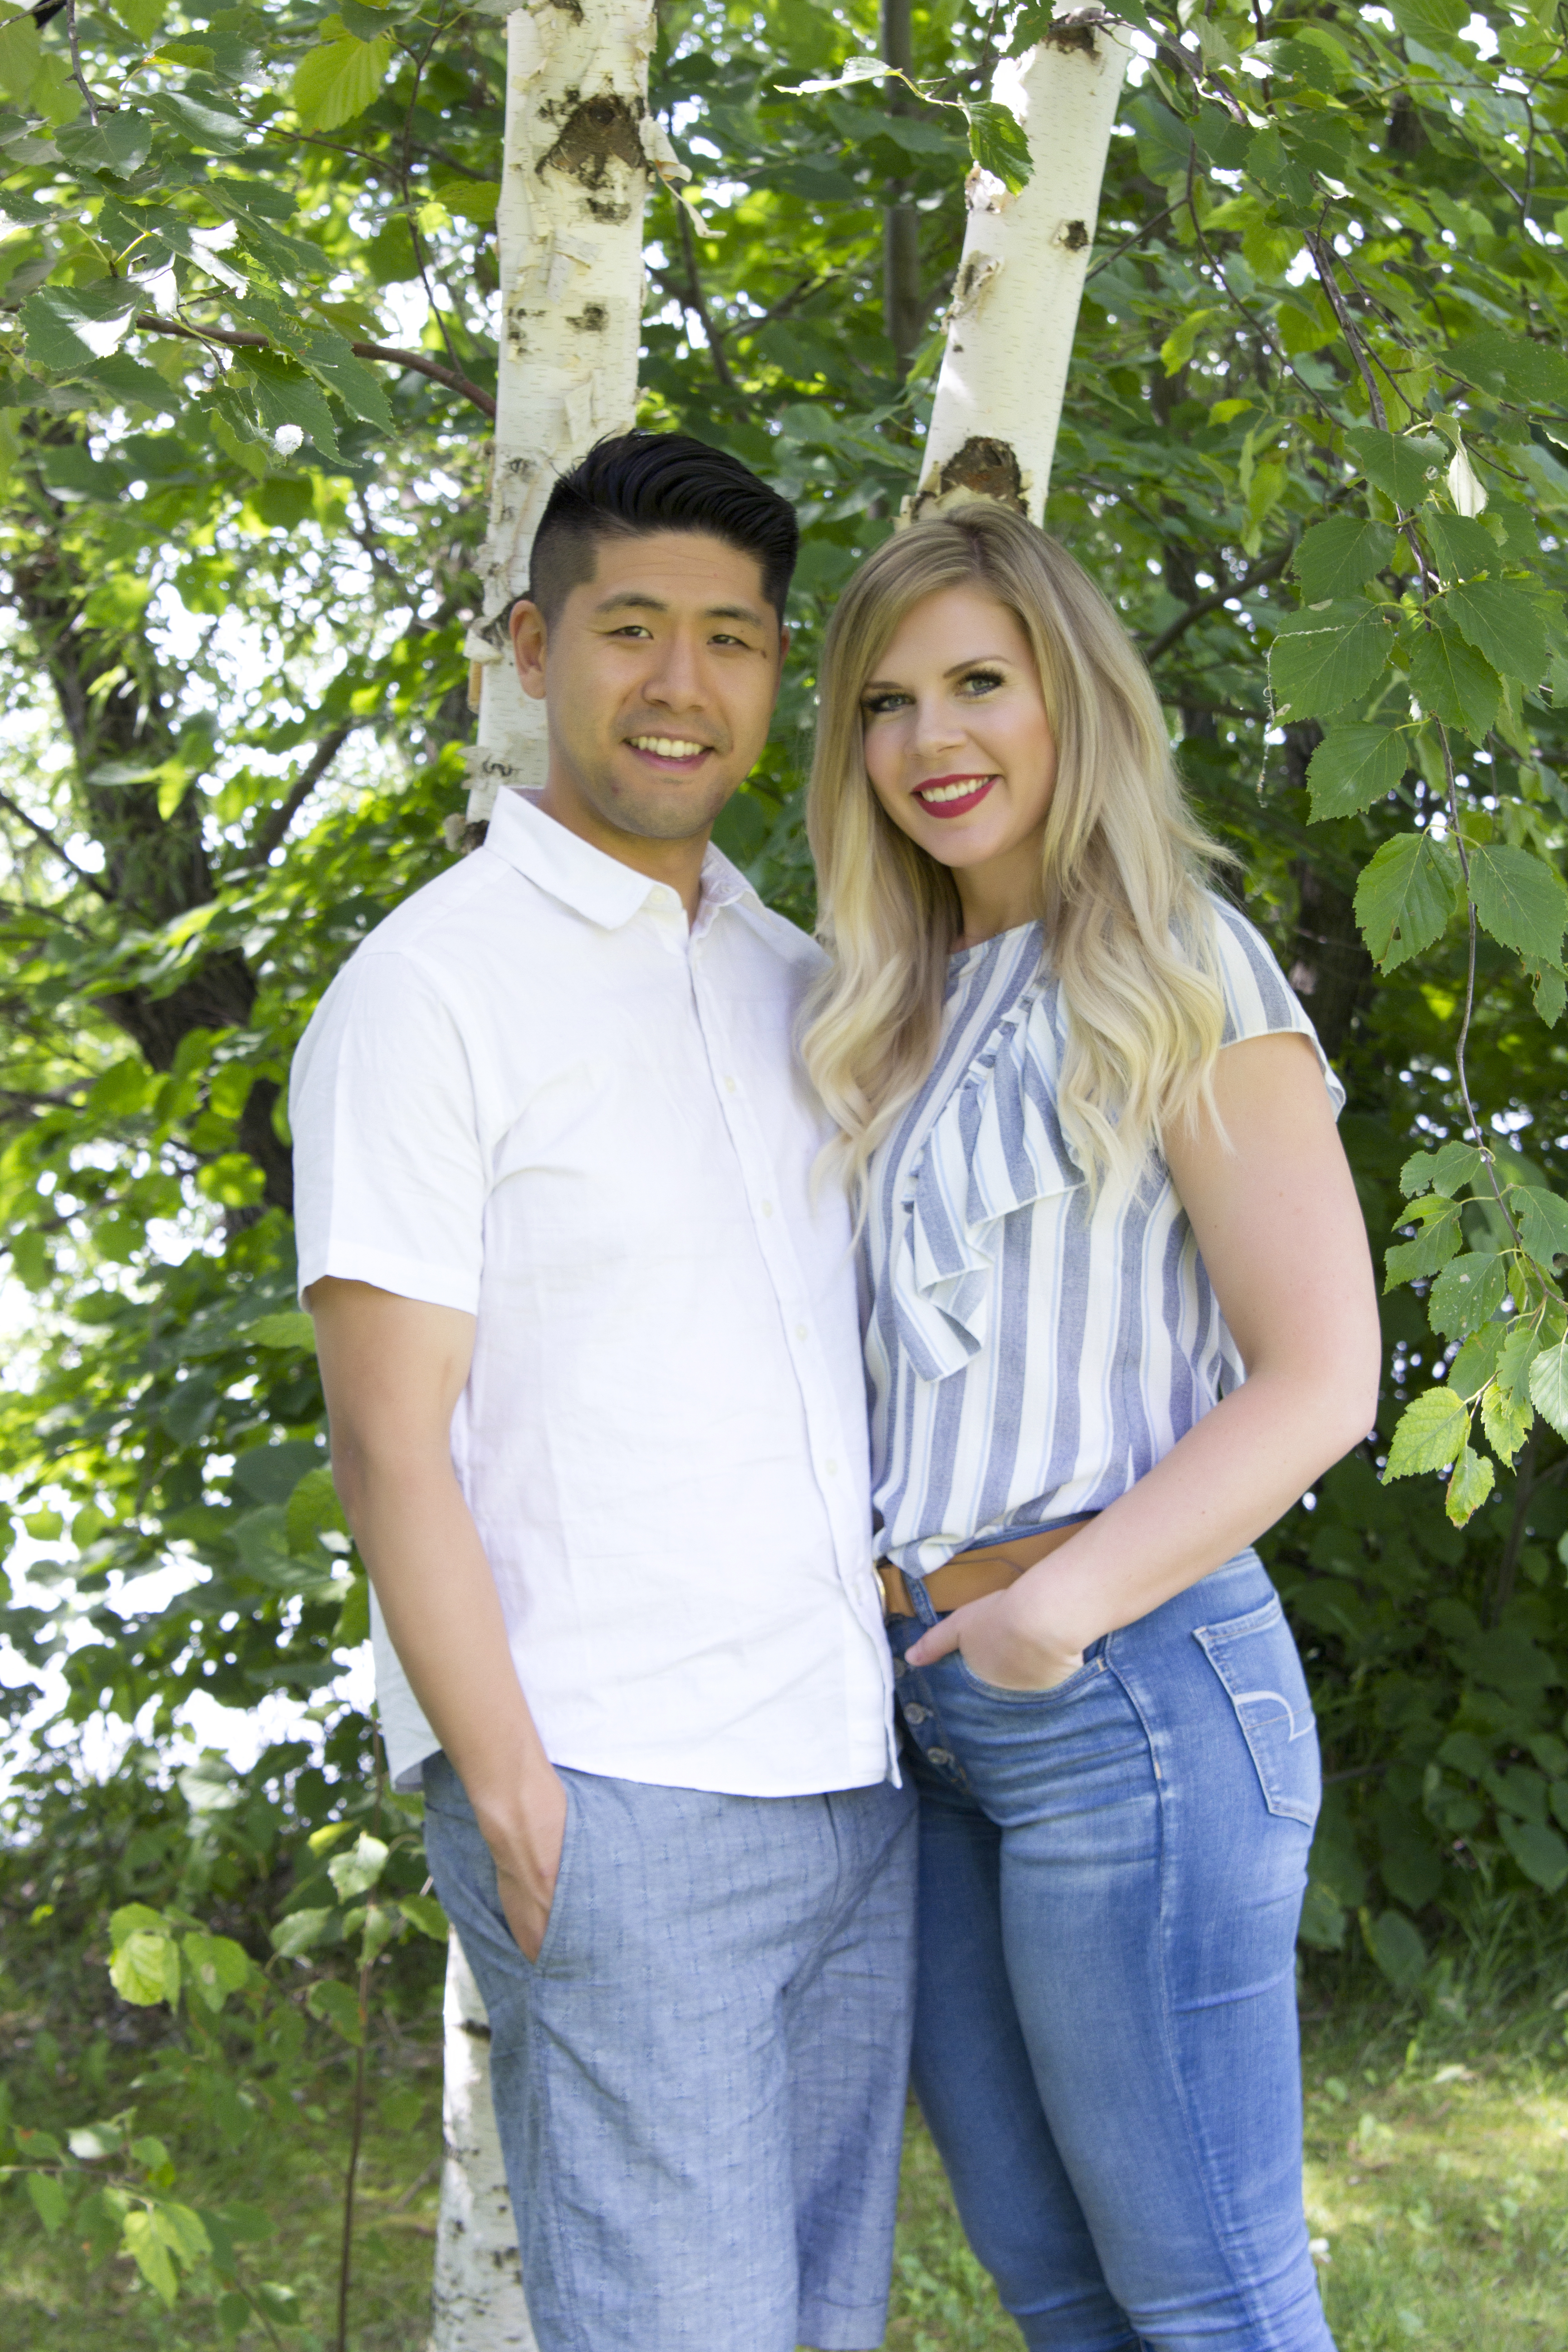 Physical therapists Dr. Won and Dr. Laura Yoo own and operate PRIME Physical Therapy together as a married couple.